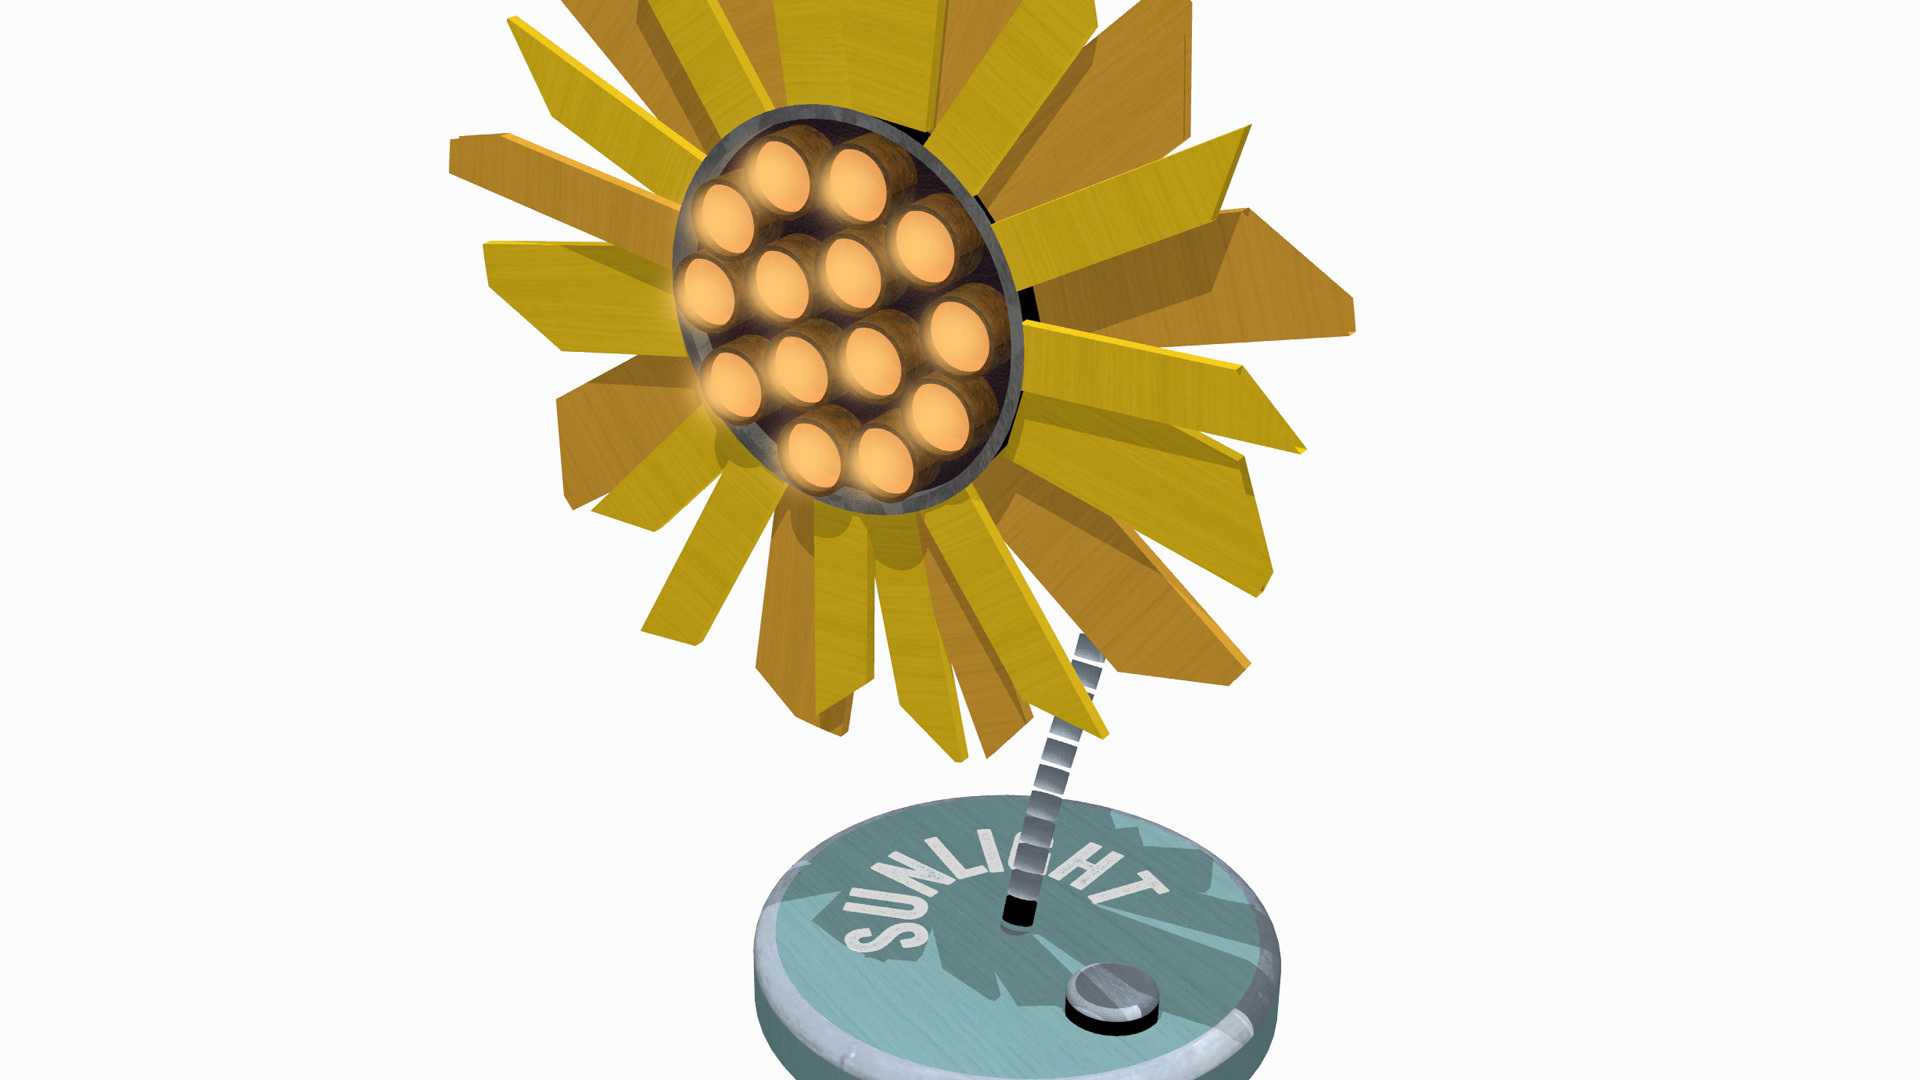 dutyfree-shopdesign-sunflower-light.jpg